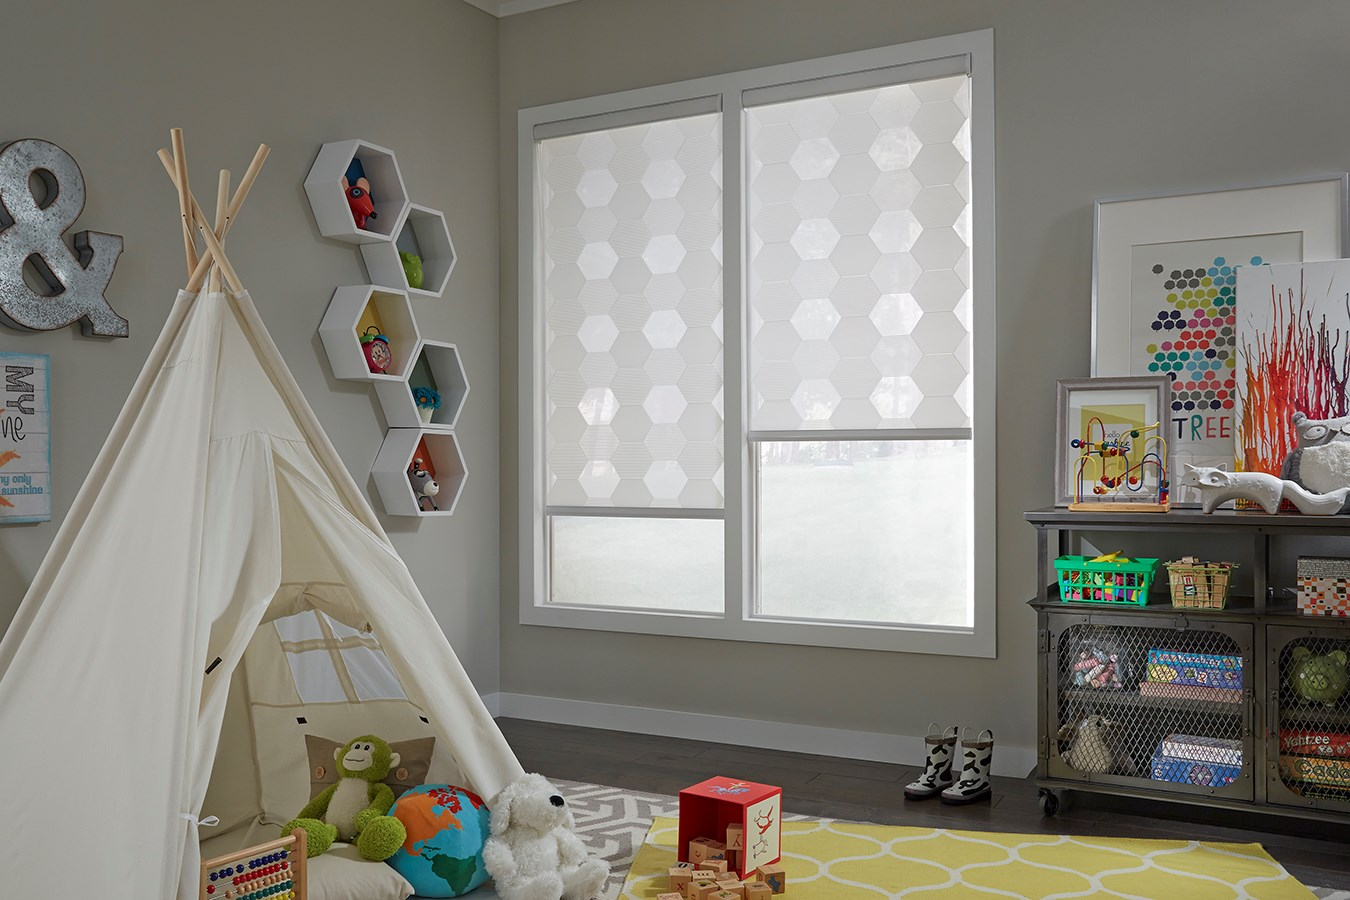 Lafayette window coverings in a children's room